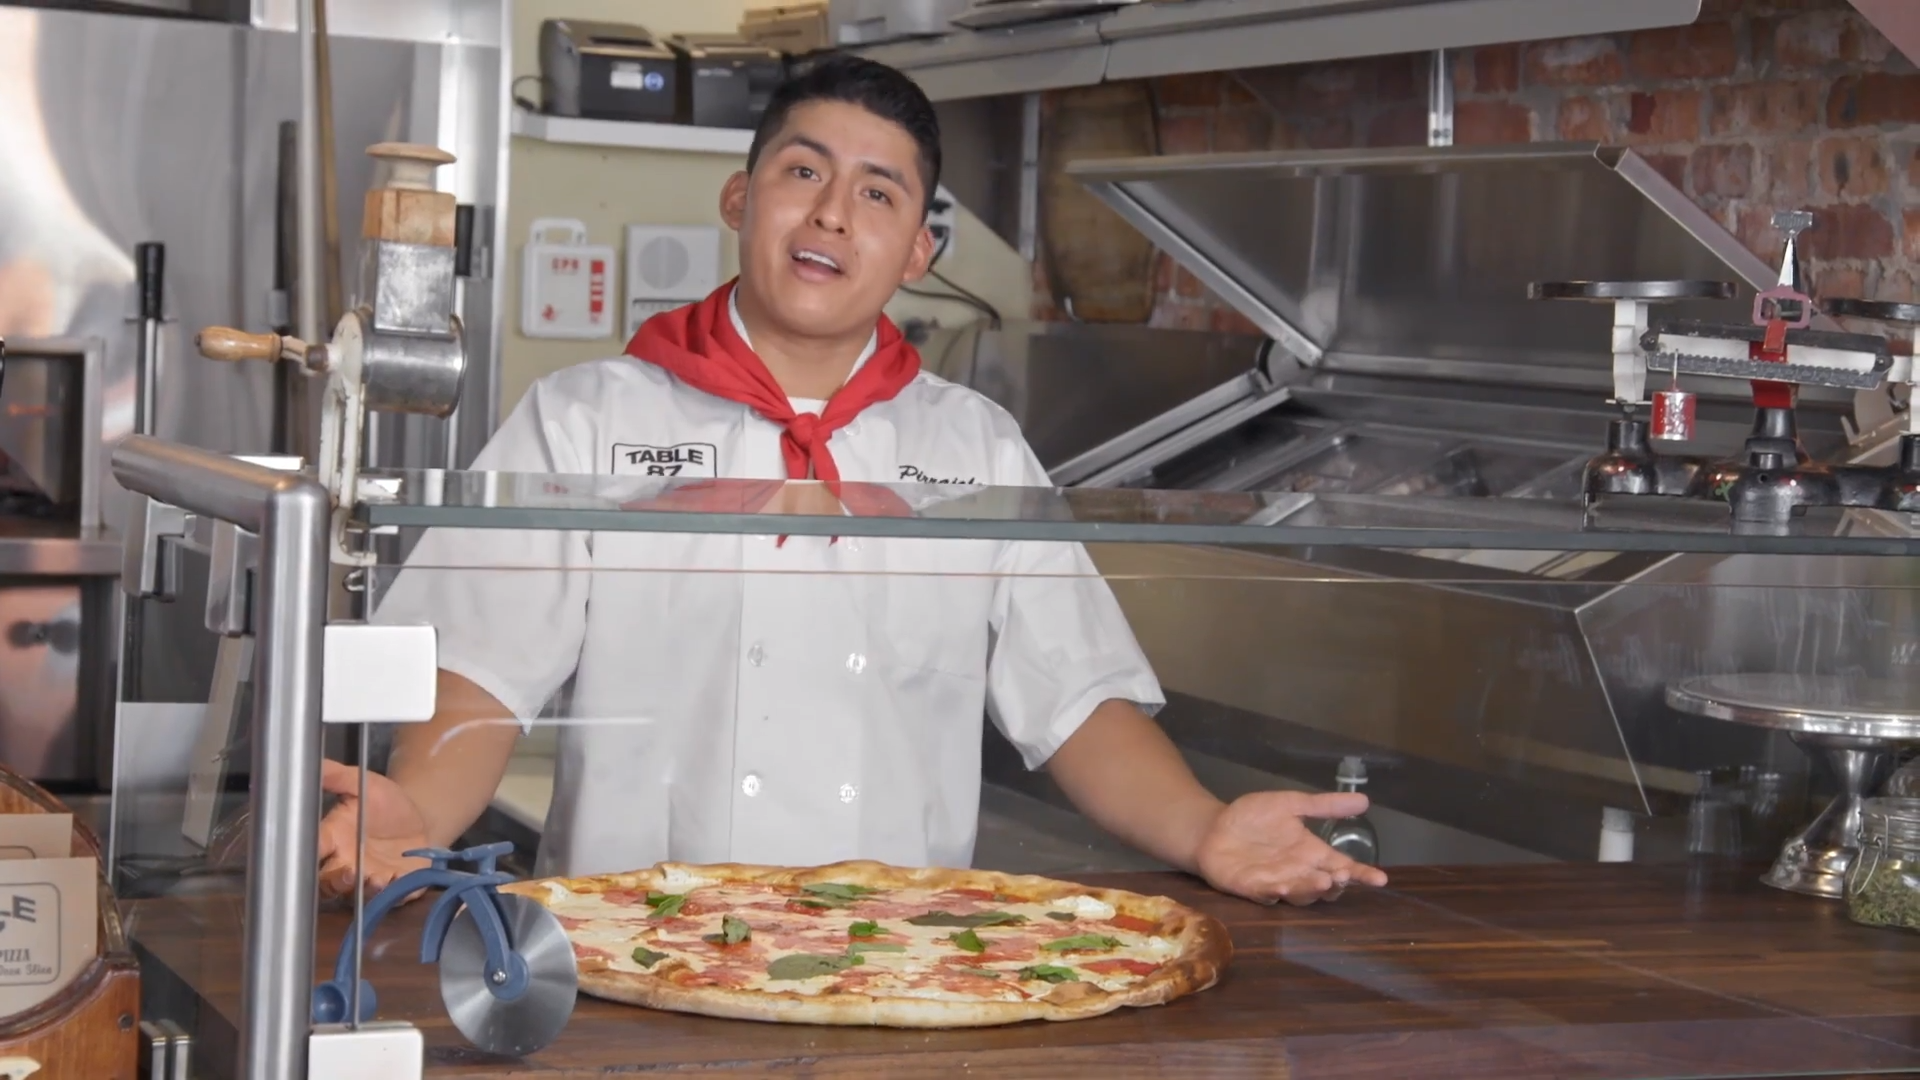 Pizza crafts - pizza chef behind counter